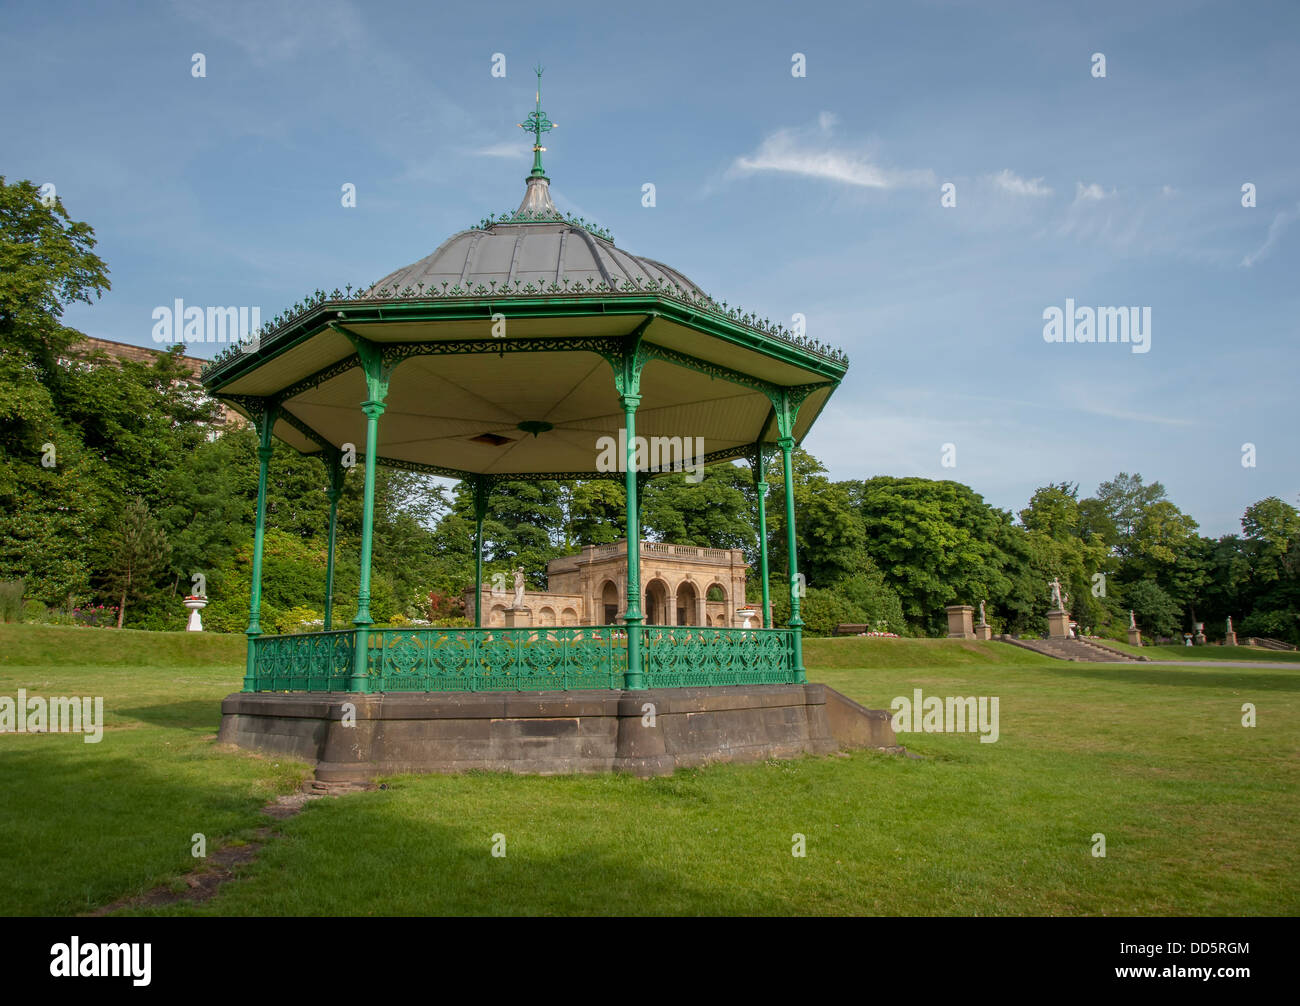 Bandstand in the Joseph Paxton designed Peoples Park in Haklifax, West Yorkshire - Stock Image